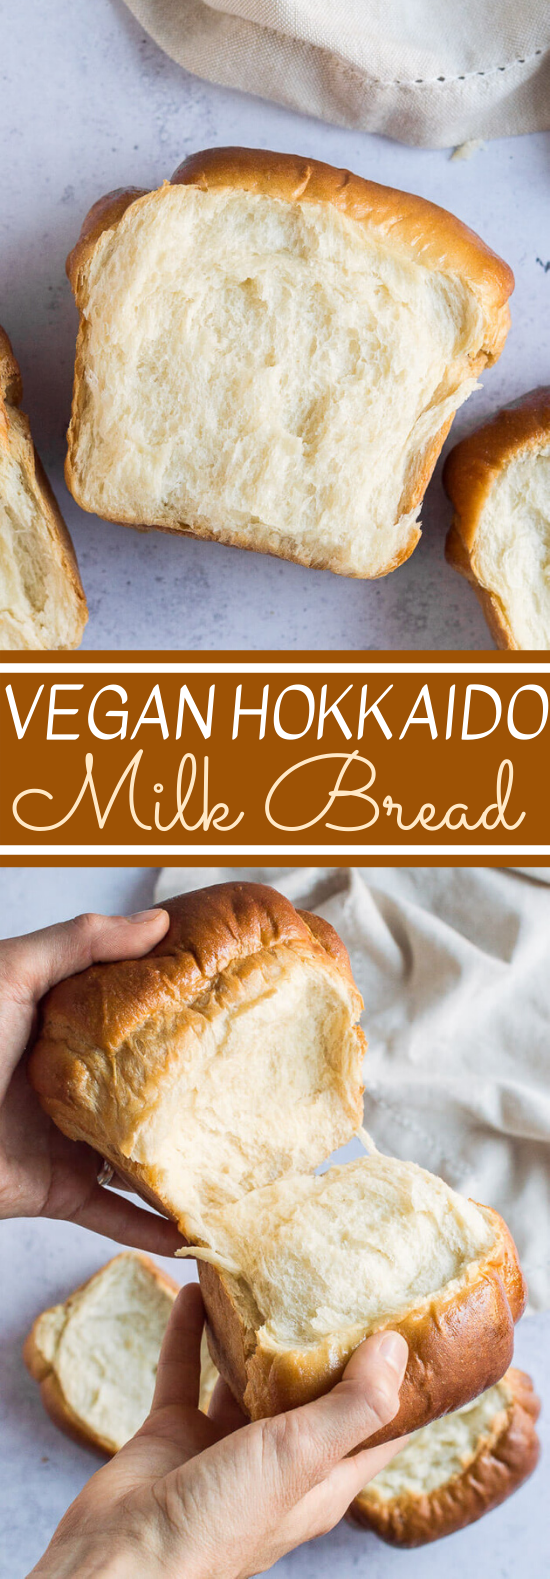 Vegan Hokkaido Milk Bread #vegan #recipe #baking #breaf #breakfast